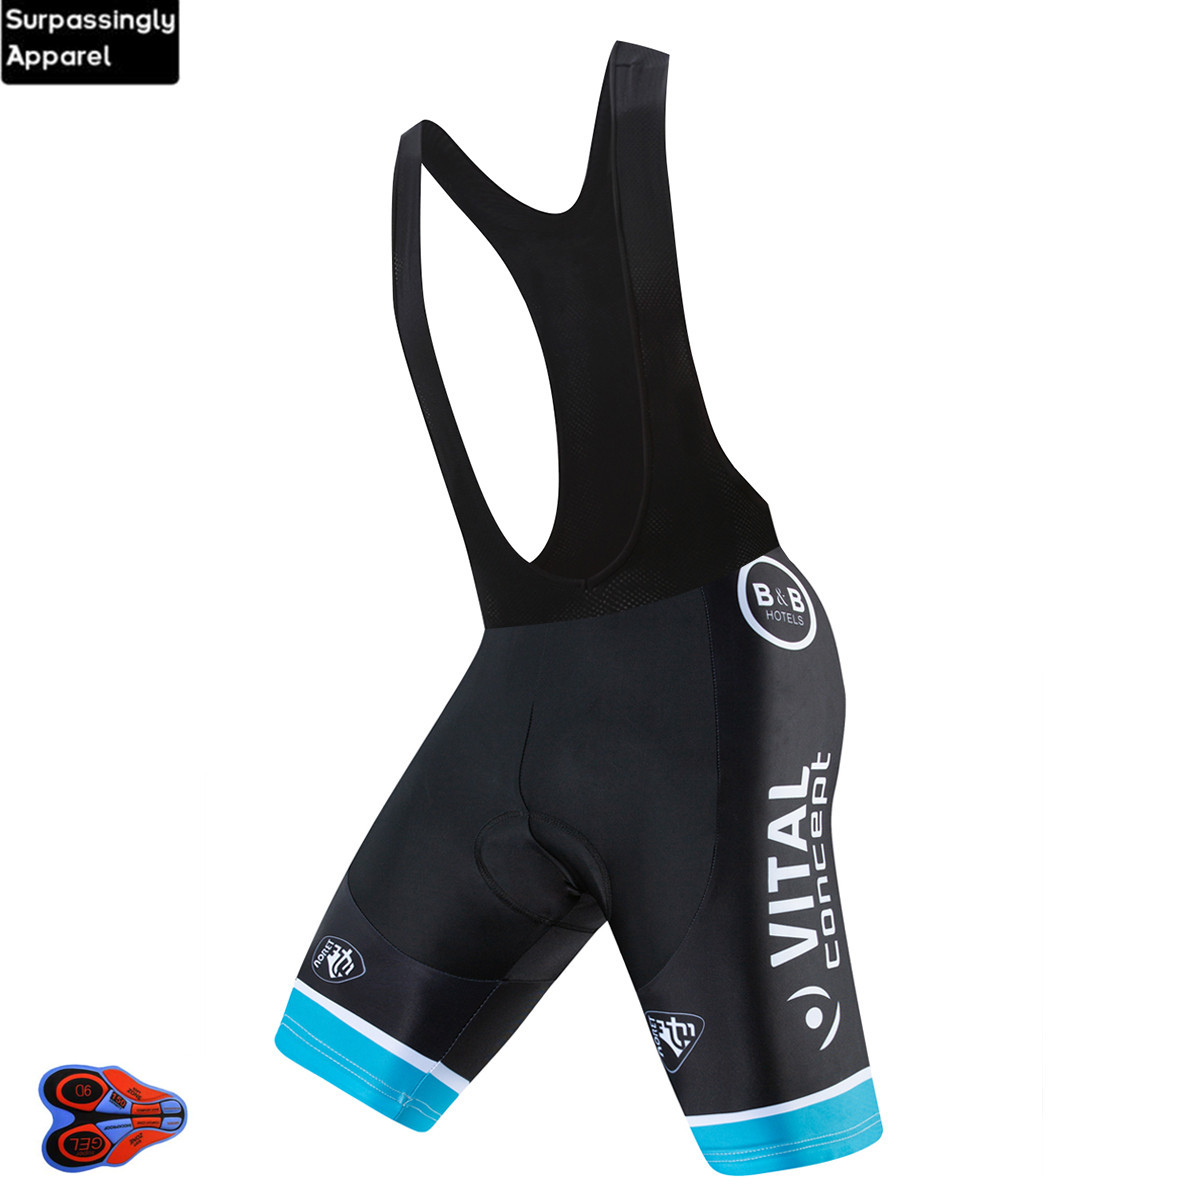 2019 VITAL Concept Pro UCI Team Summer Mens Cycling <font><b>Bib</b></font> <font><b>Short</b></font> With 9D Gel Pad MTB Bike Riding <font><b>Shorts</b></font> Bicycle Cycling Black Pants image